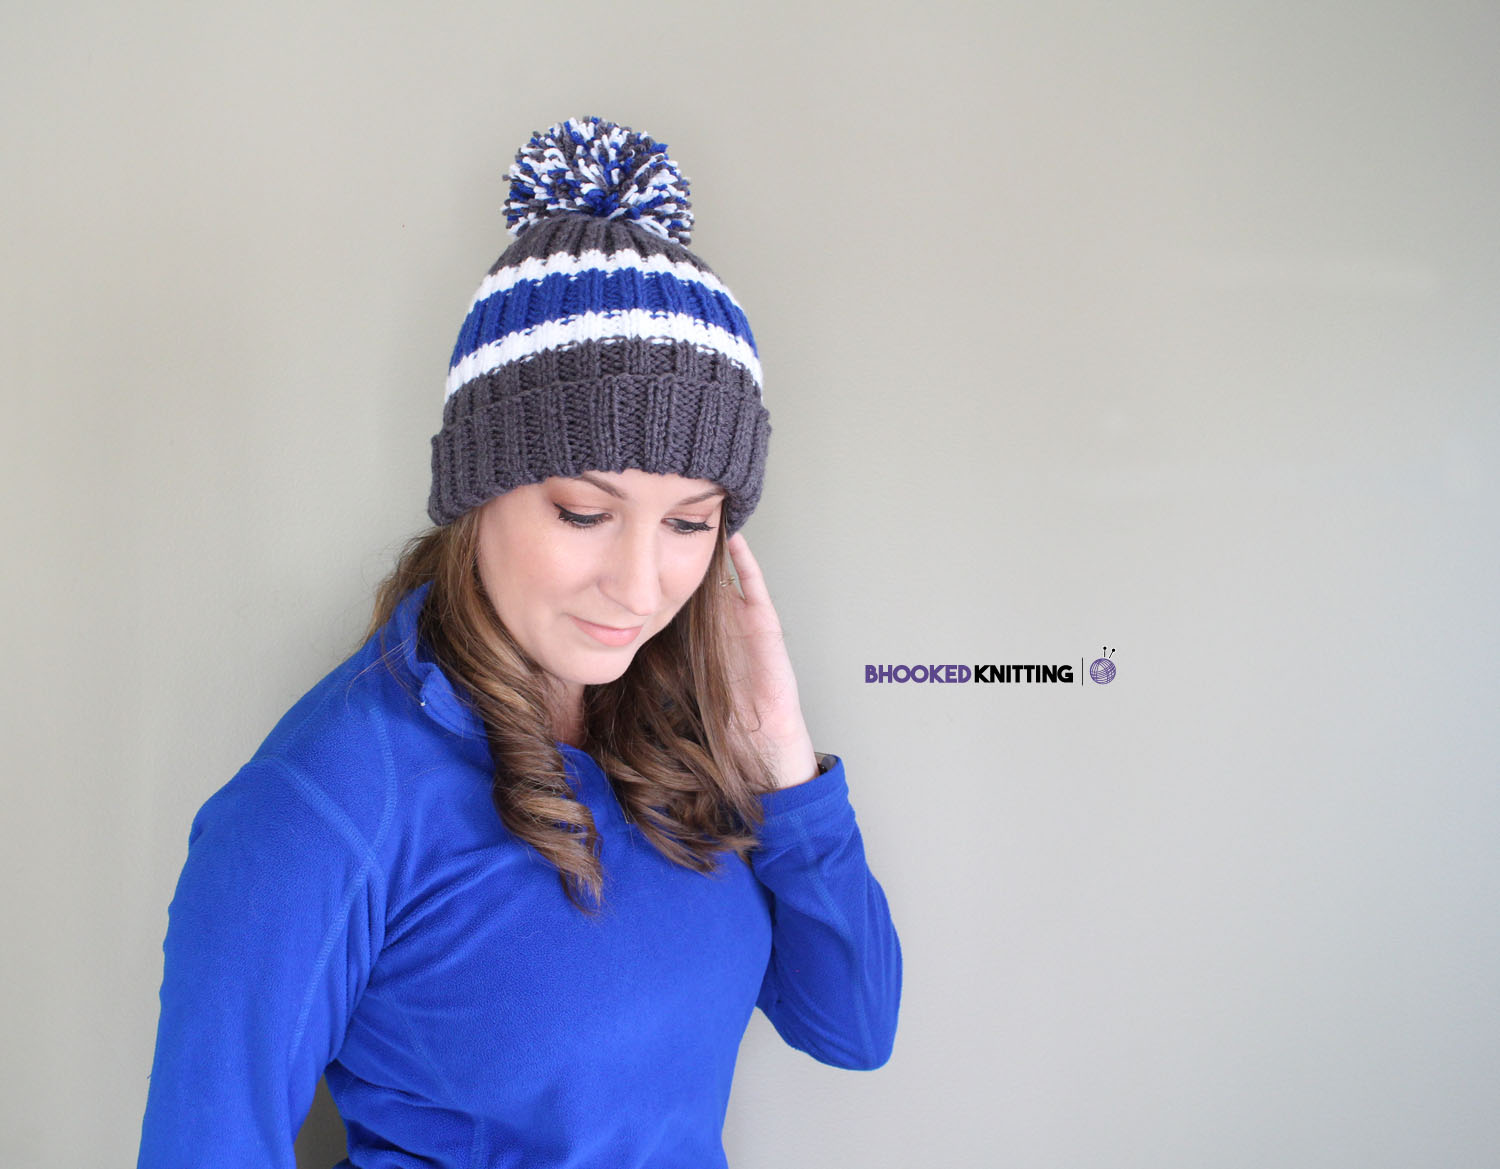 How To Knit a Beanie for Beginners - B.hooked Crochet | Knitting ...